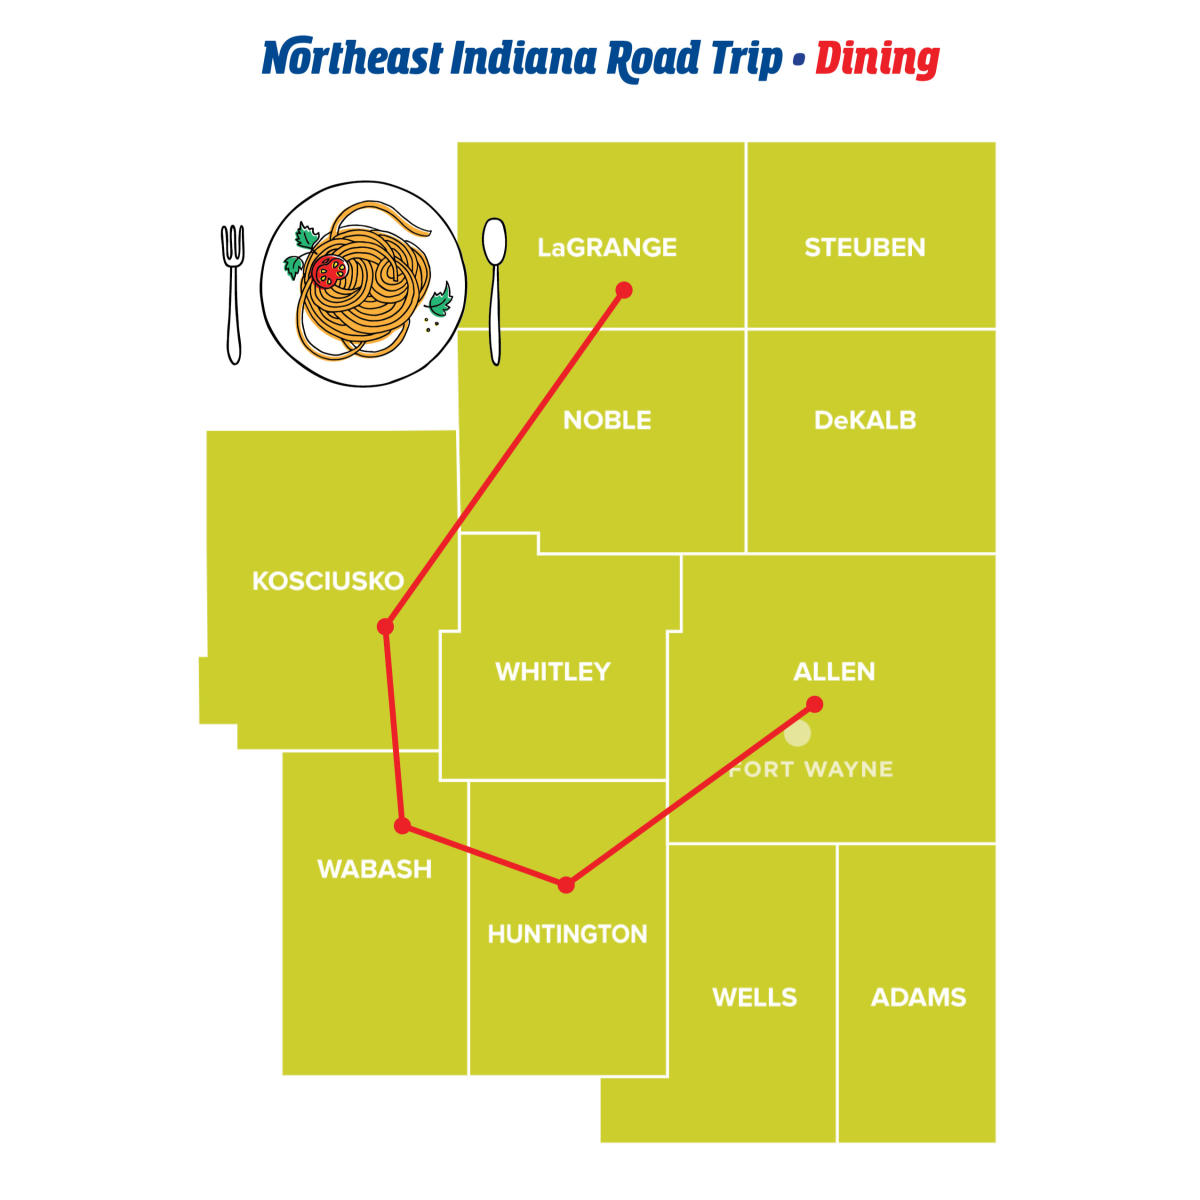 Dining - Northeast Indiana Road Trips